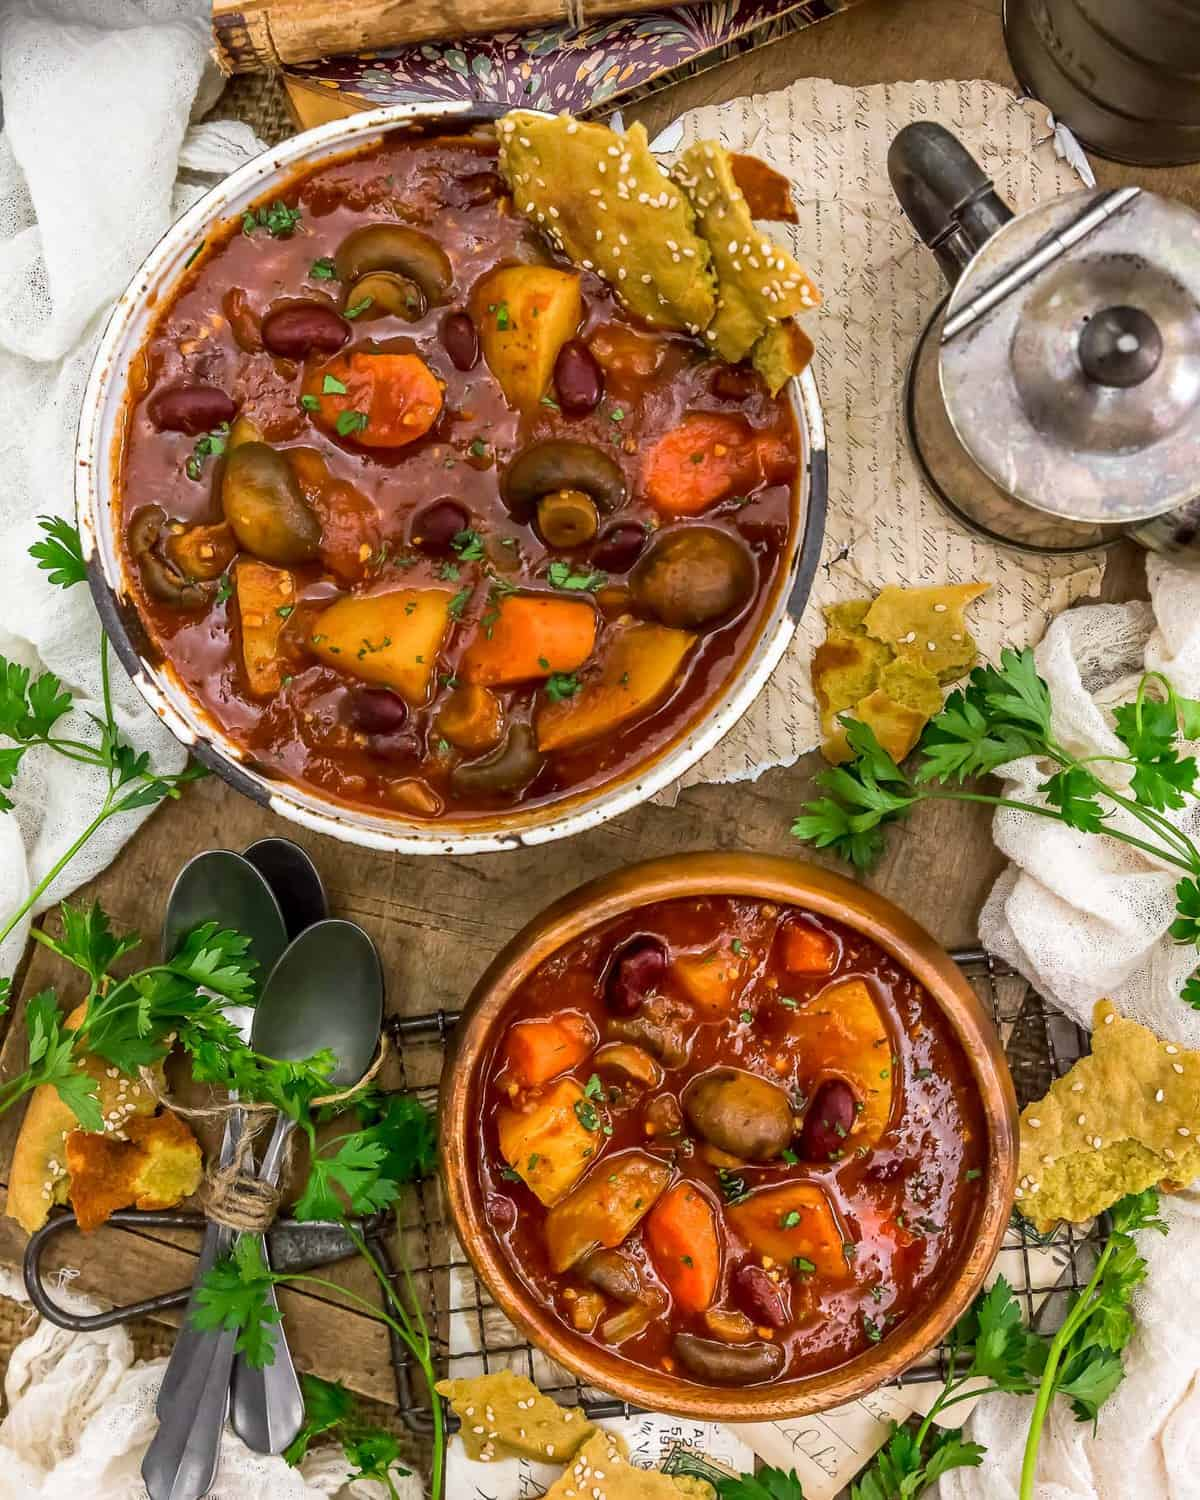 Tablescape of Rustic Braised Vegetable Stew